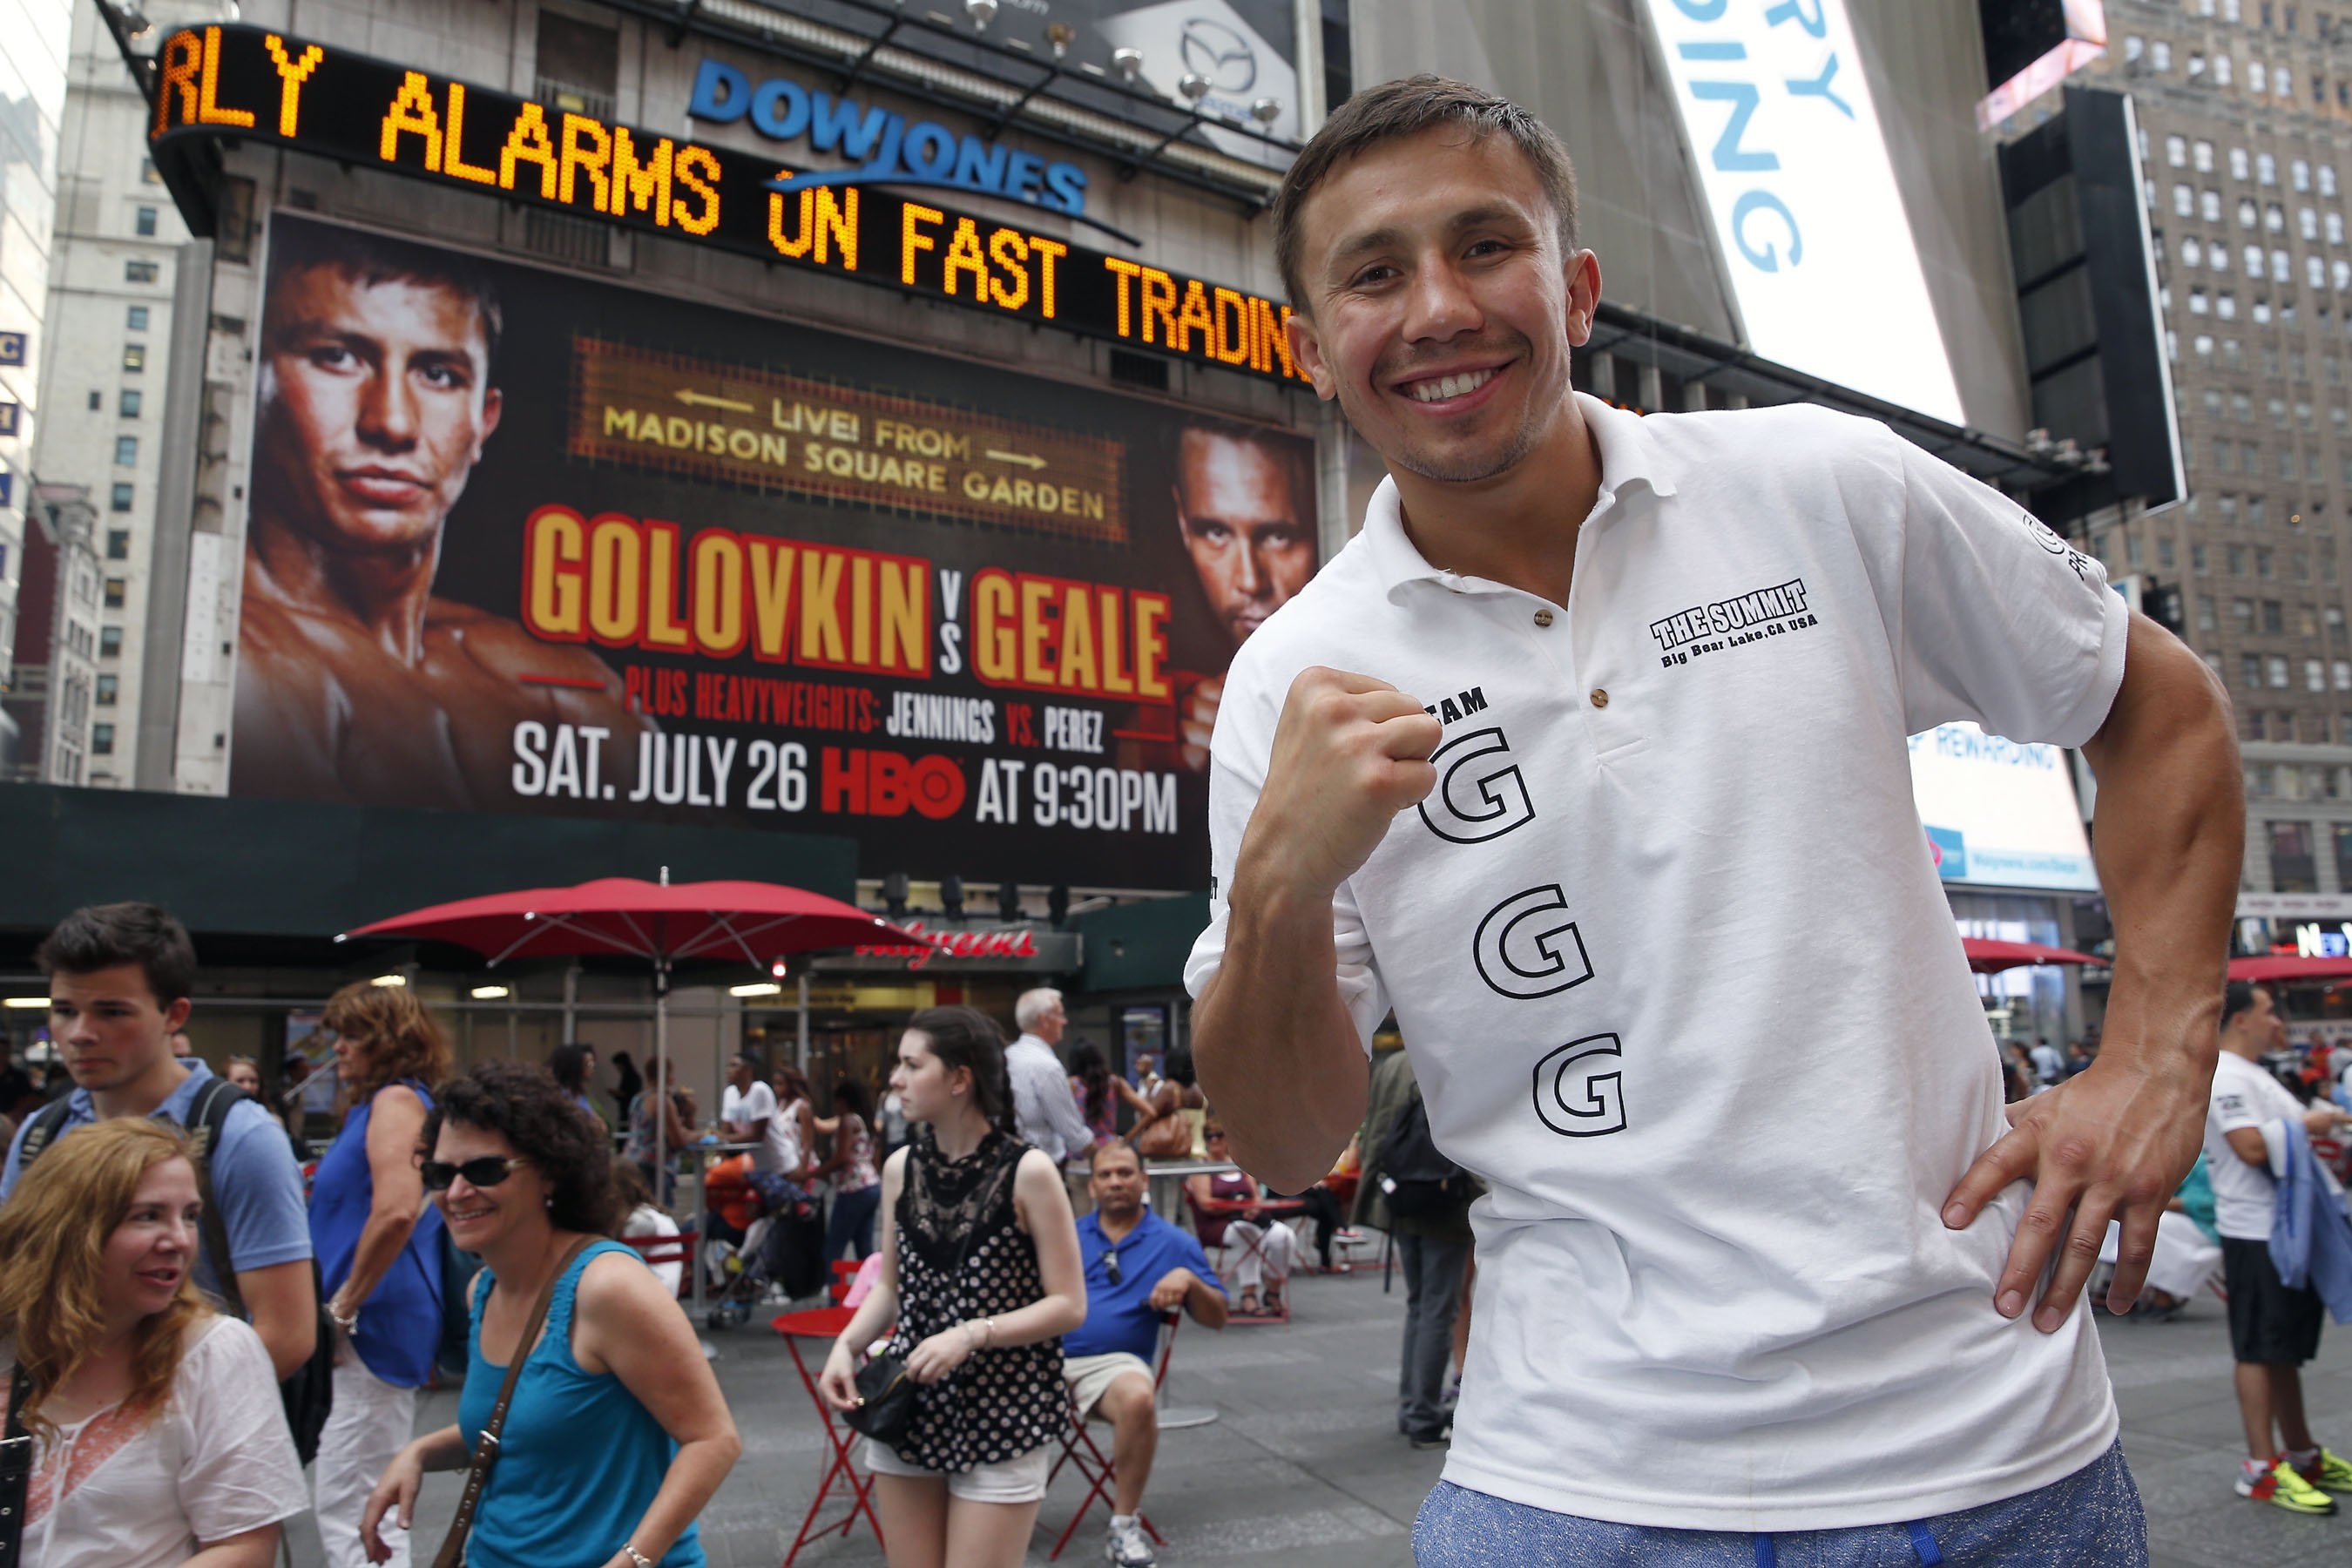 Gennady Golovkin vs. Daniel Geale: GGG hits Times Square!